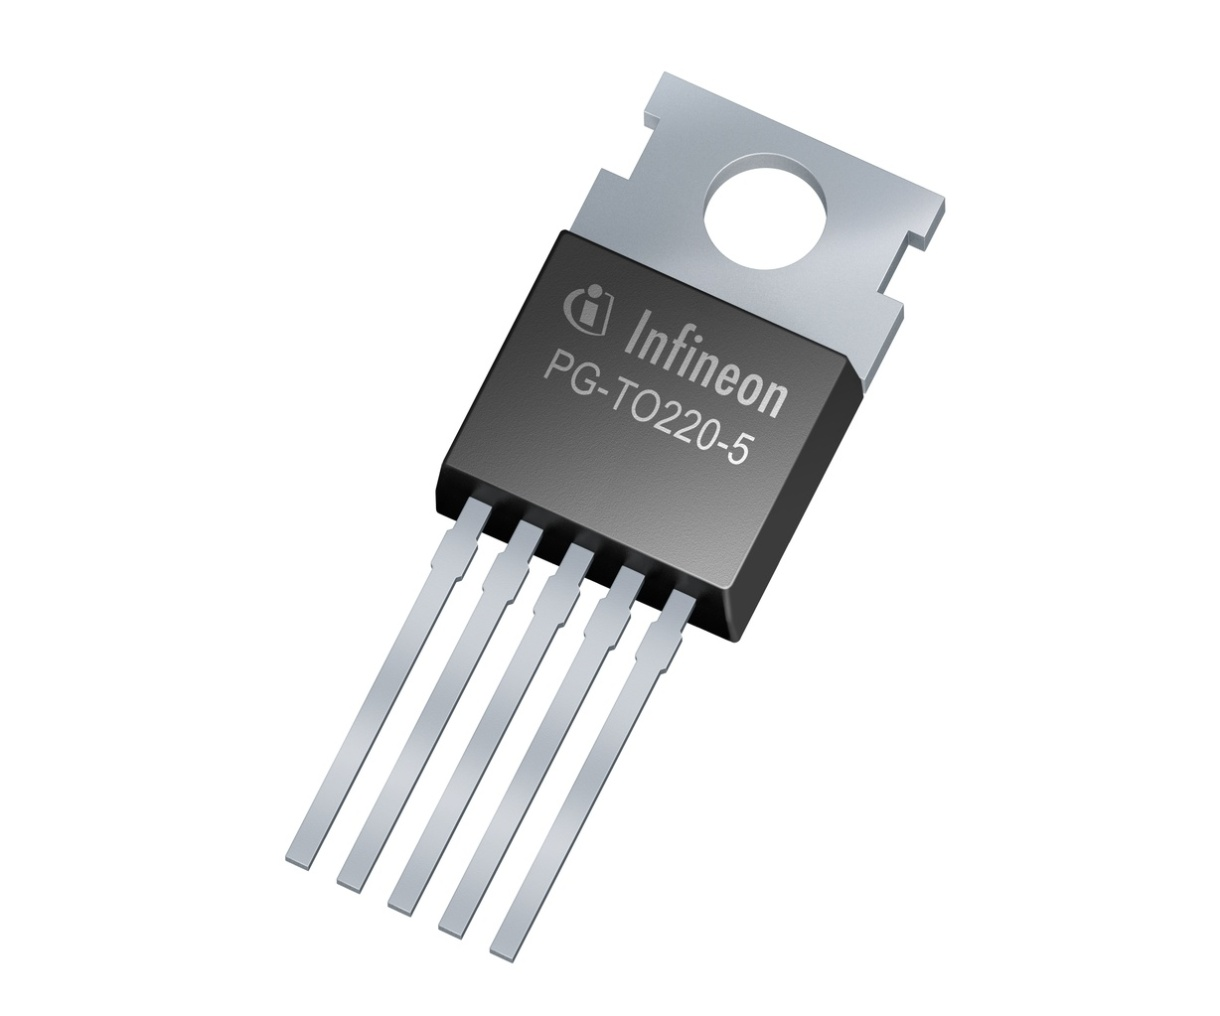 Ifx21004tn V51 Infineon Technologies Linear Integrated Circuit Questions And Answers Voltage Limiter 01 00 2010 12 13 Pdf Mb